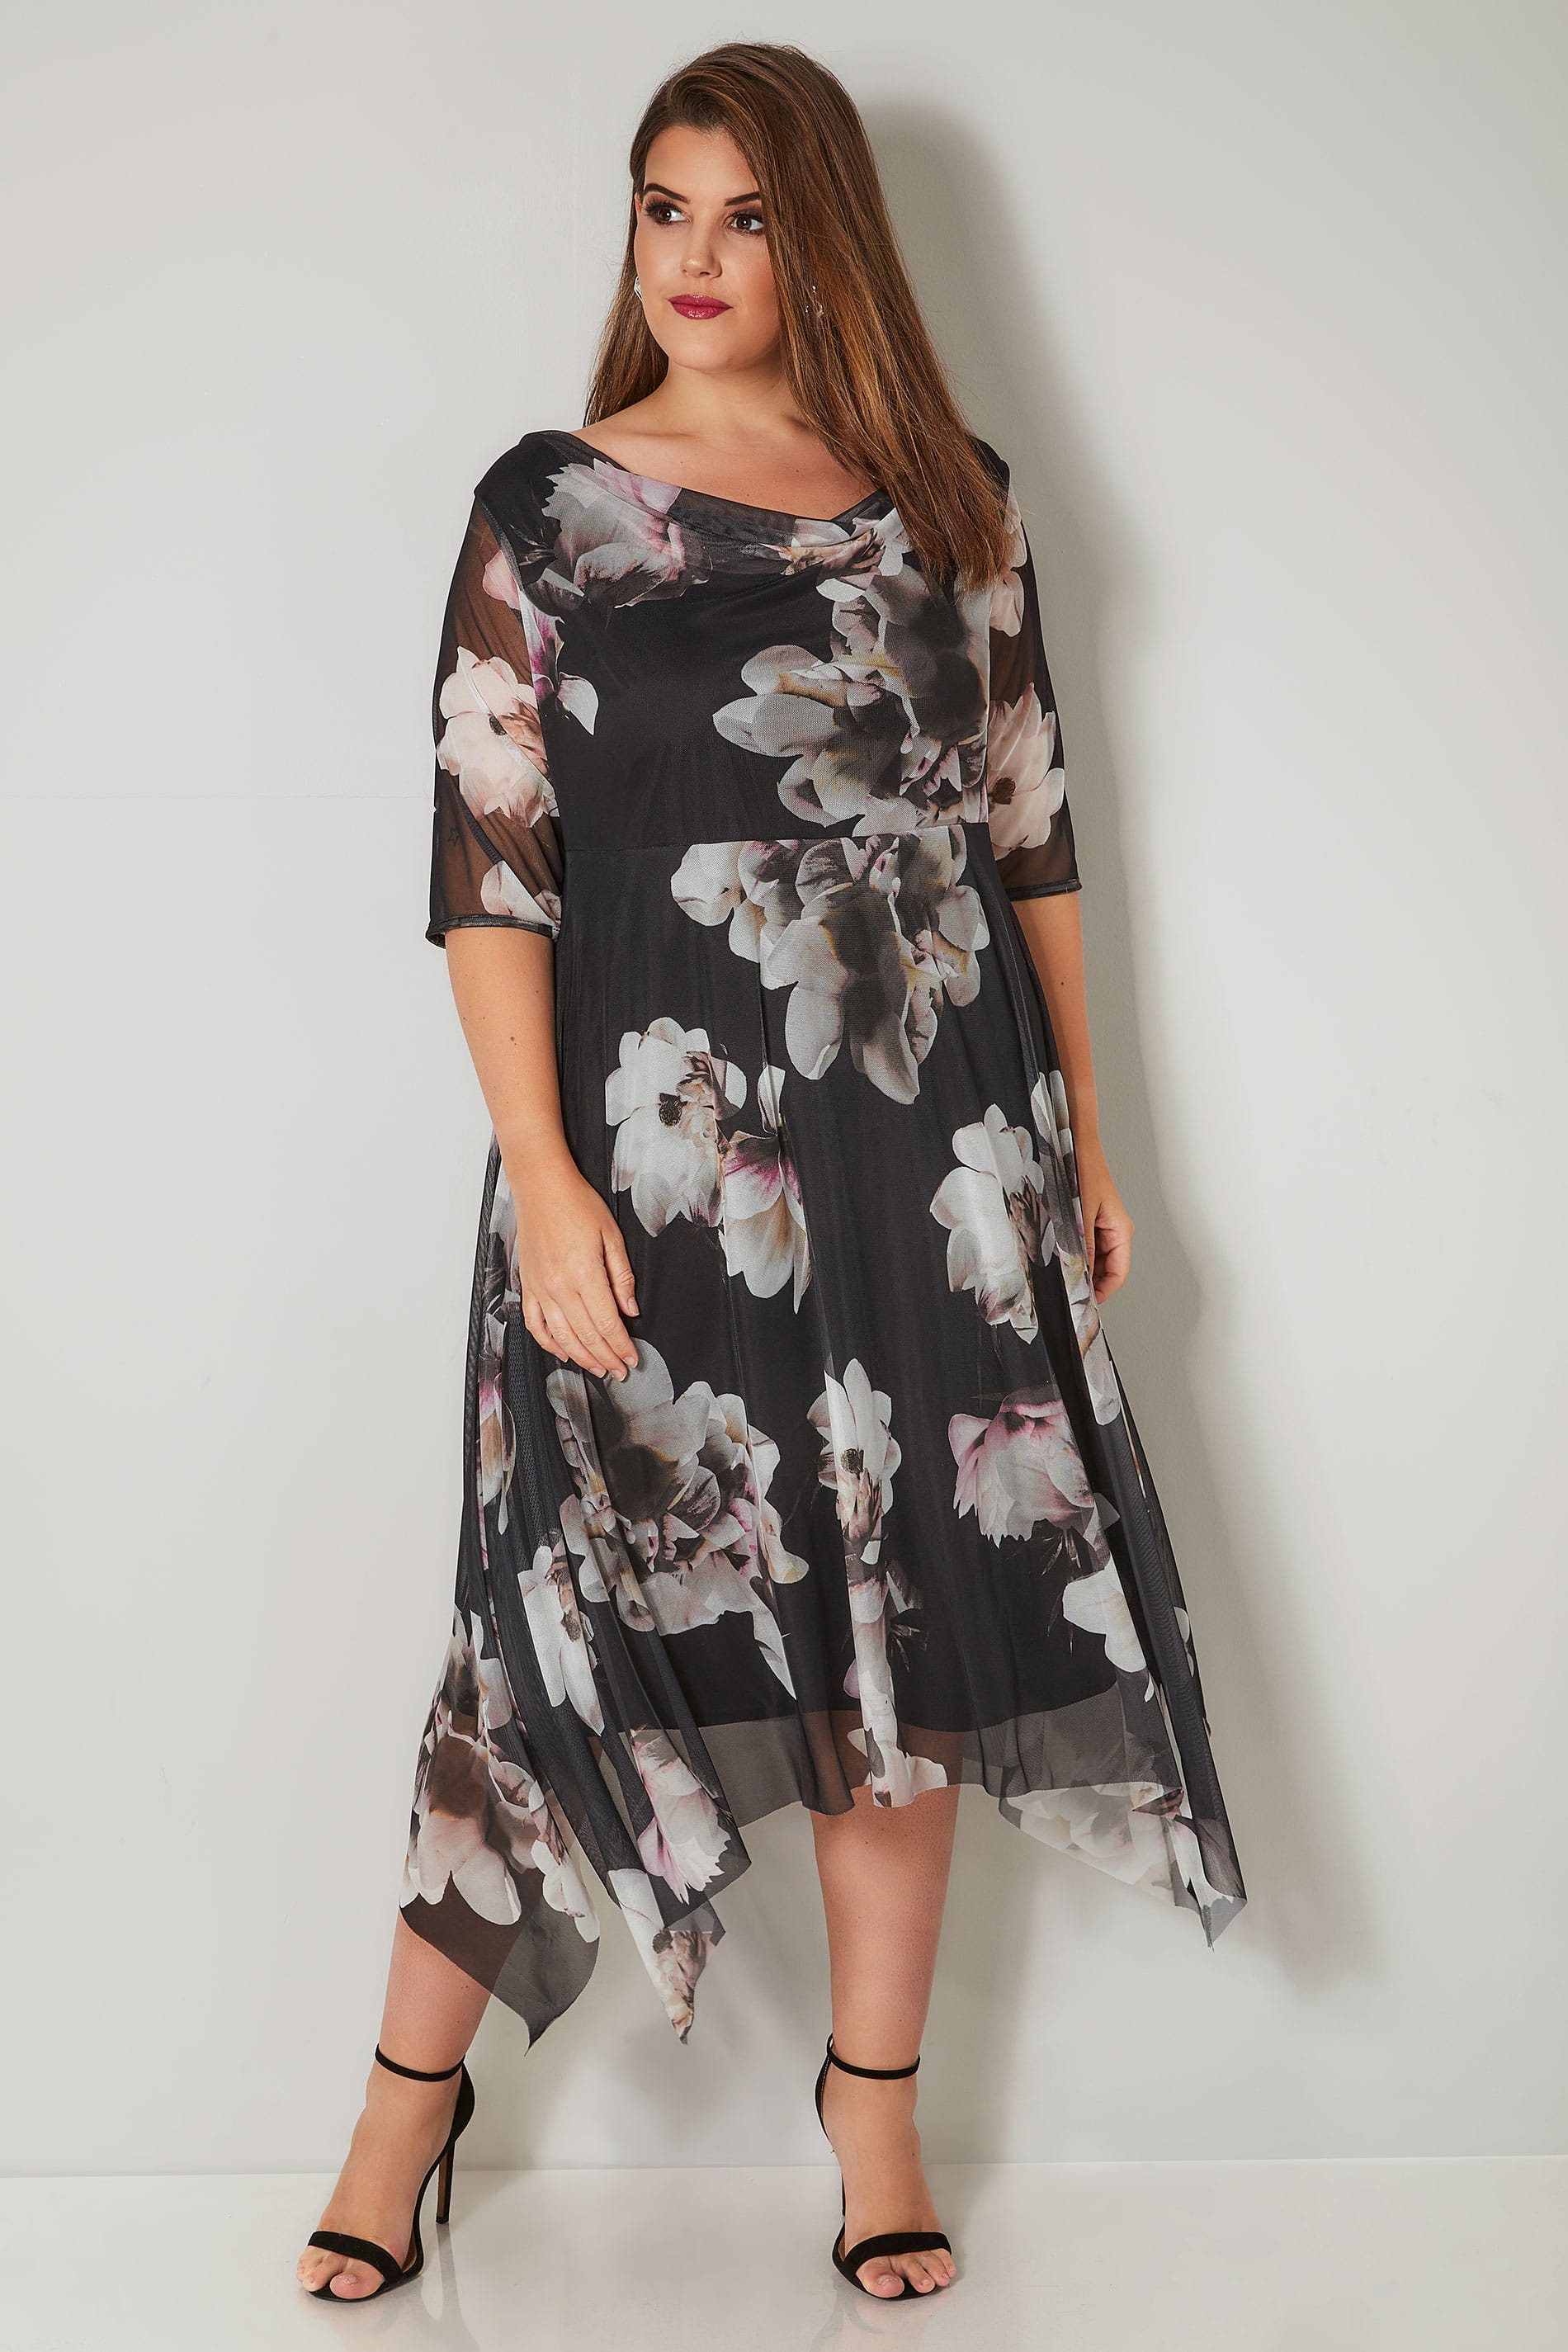 98361ce8da YOURS LONDON Black Floral Midi Dress With Cowl Neck